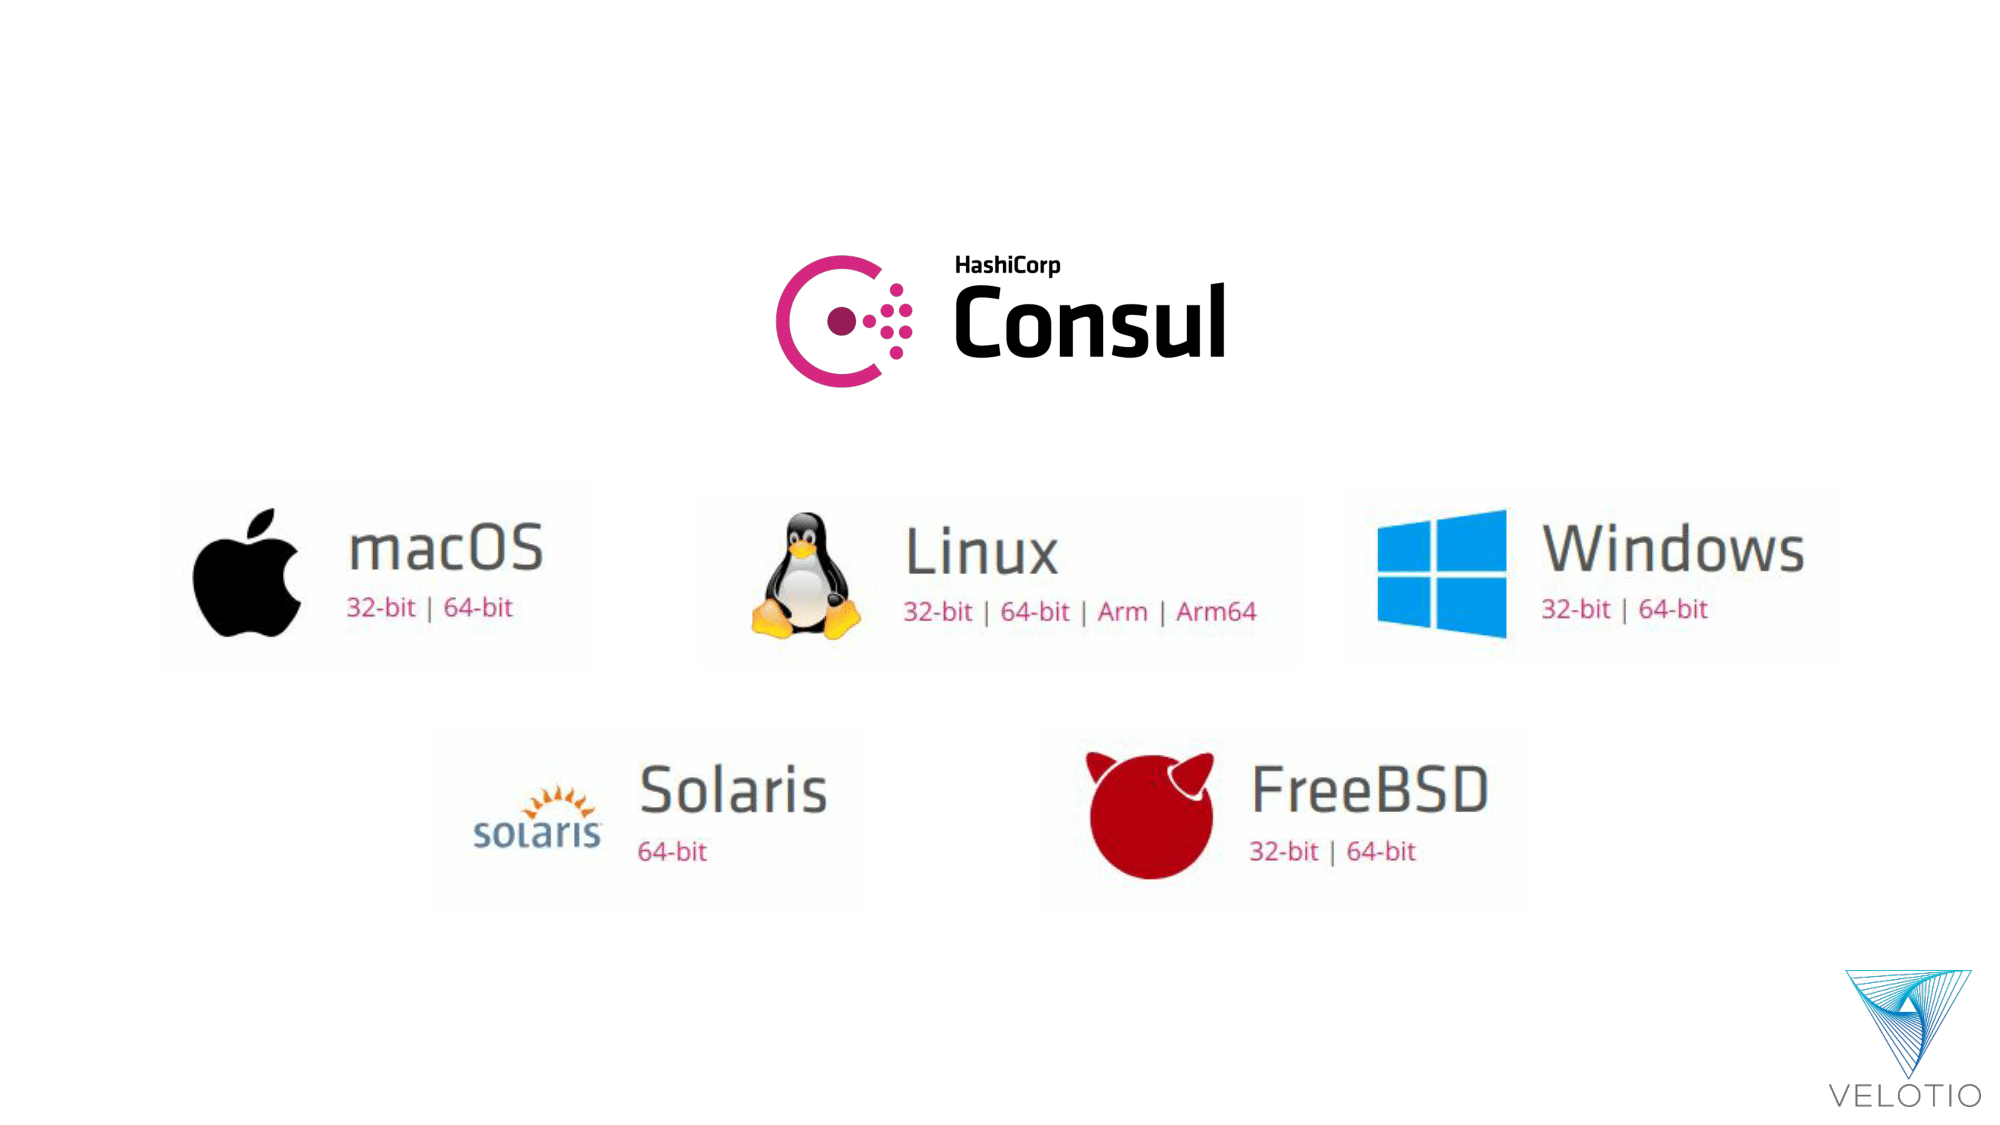 Various download options for Consul on different operating systems